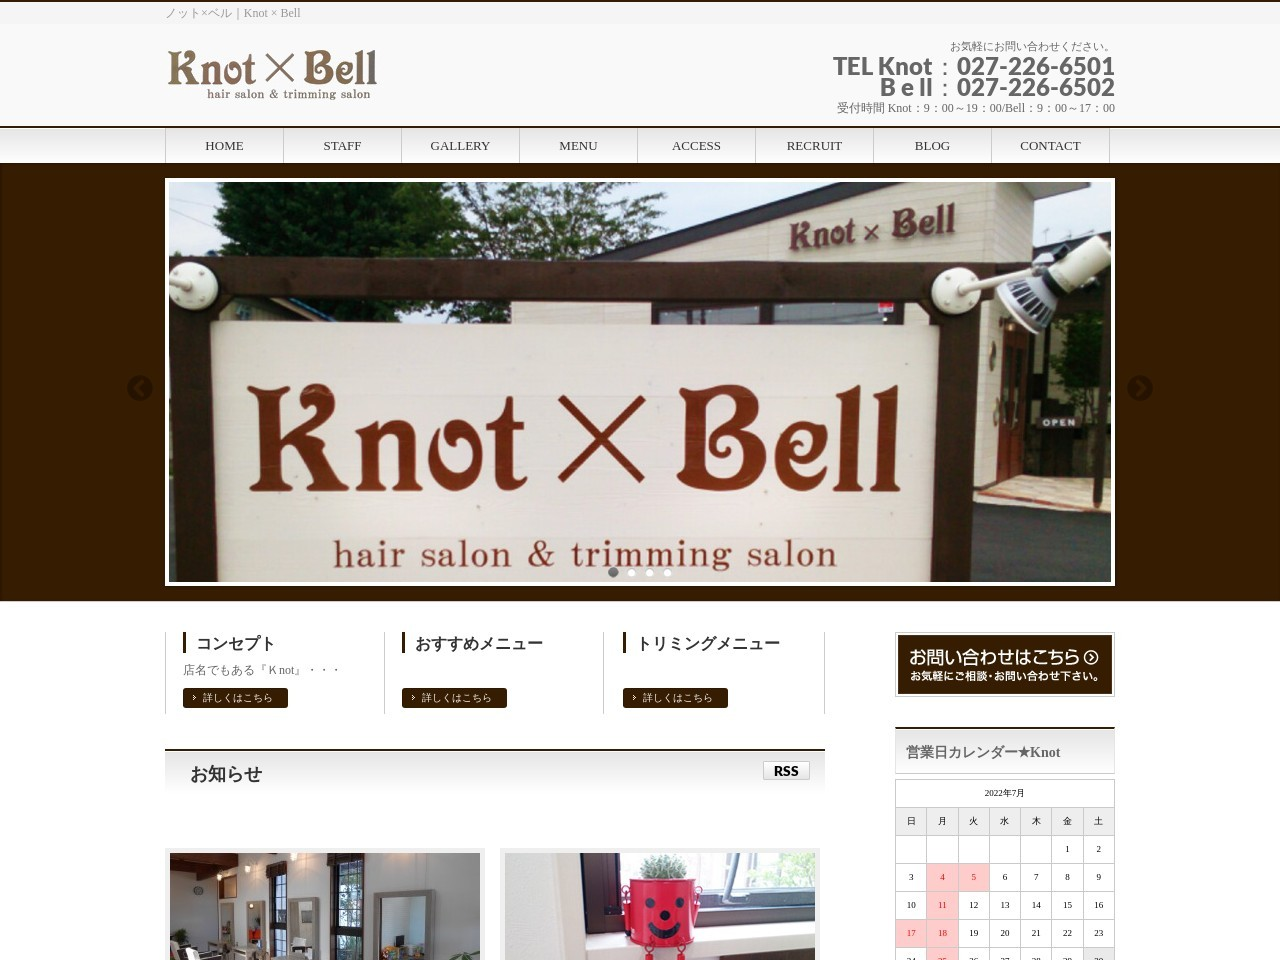 Knot & Bell